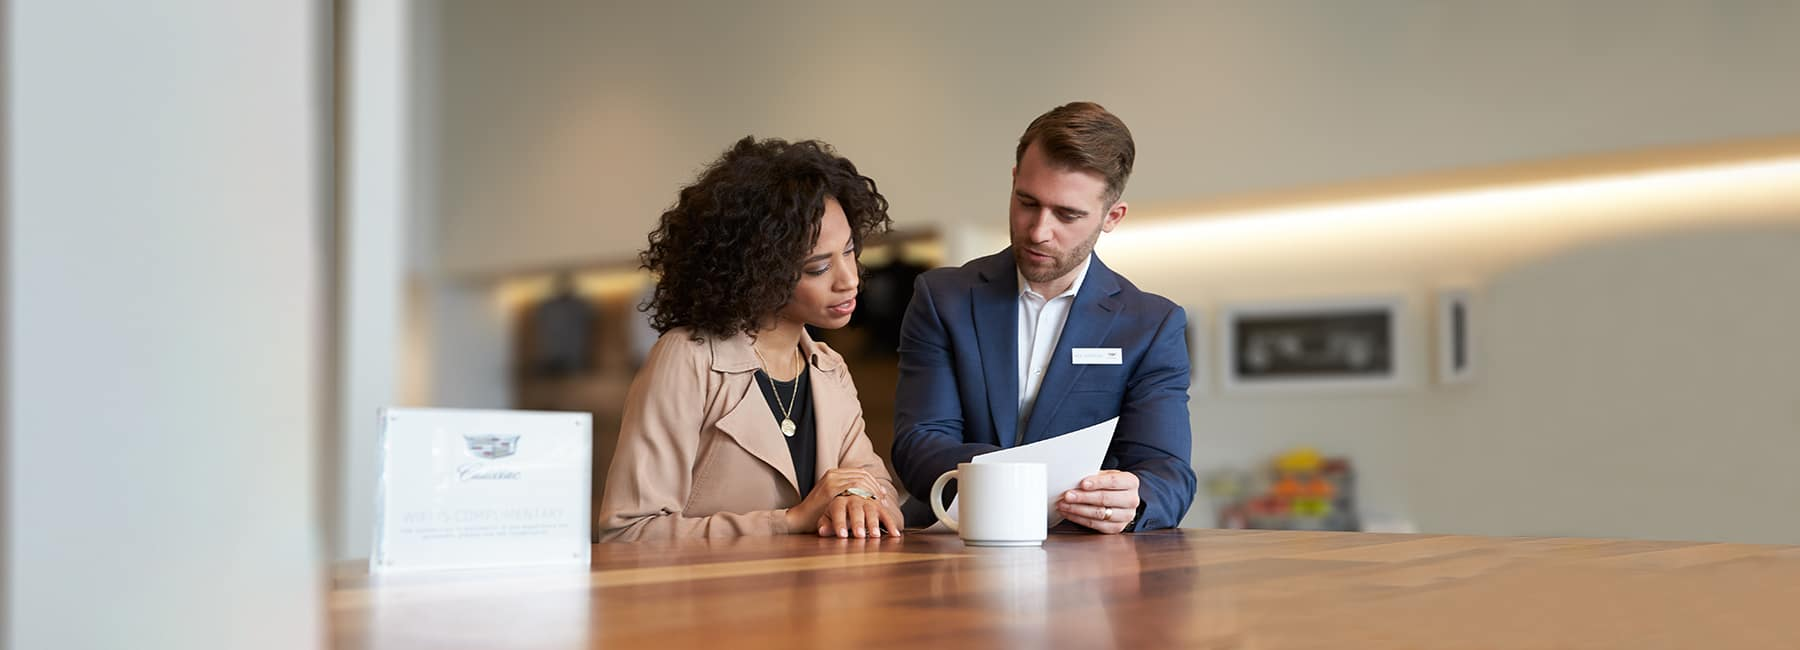 Man and woman going over paperwork